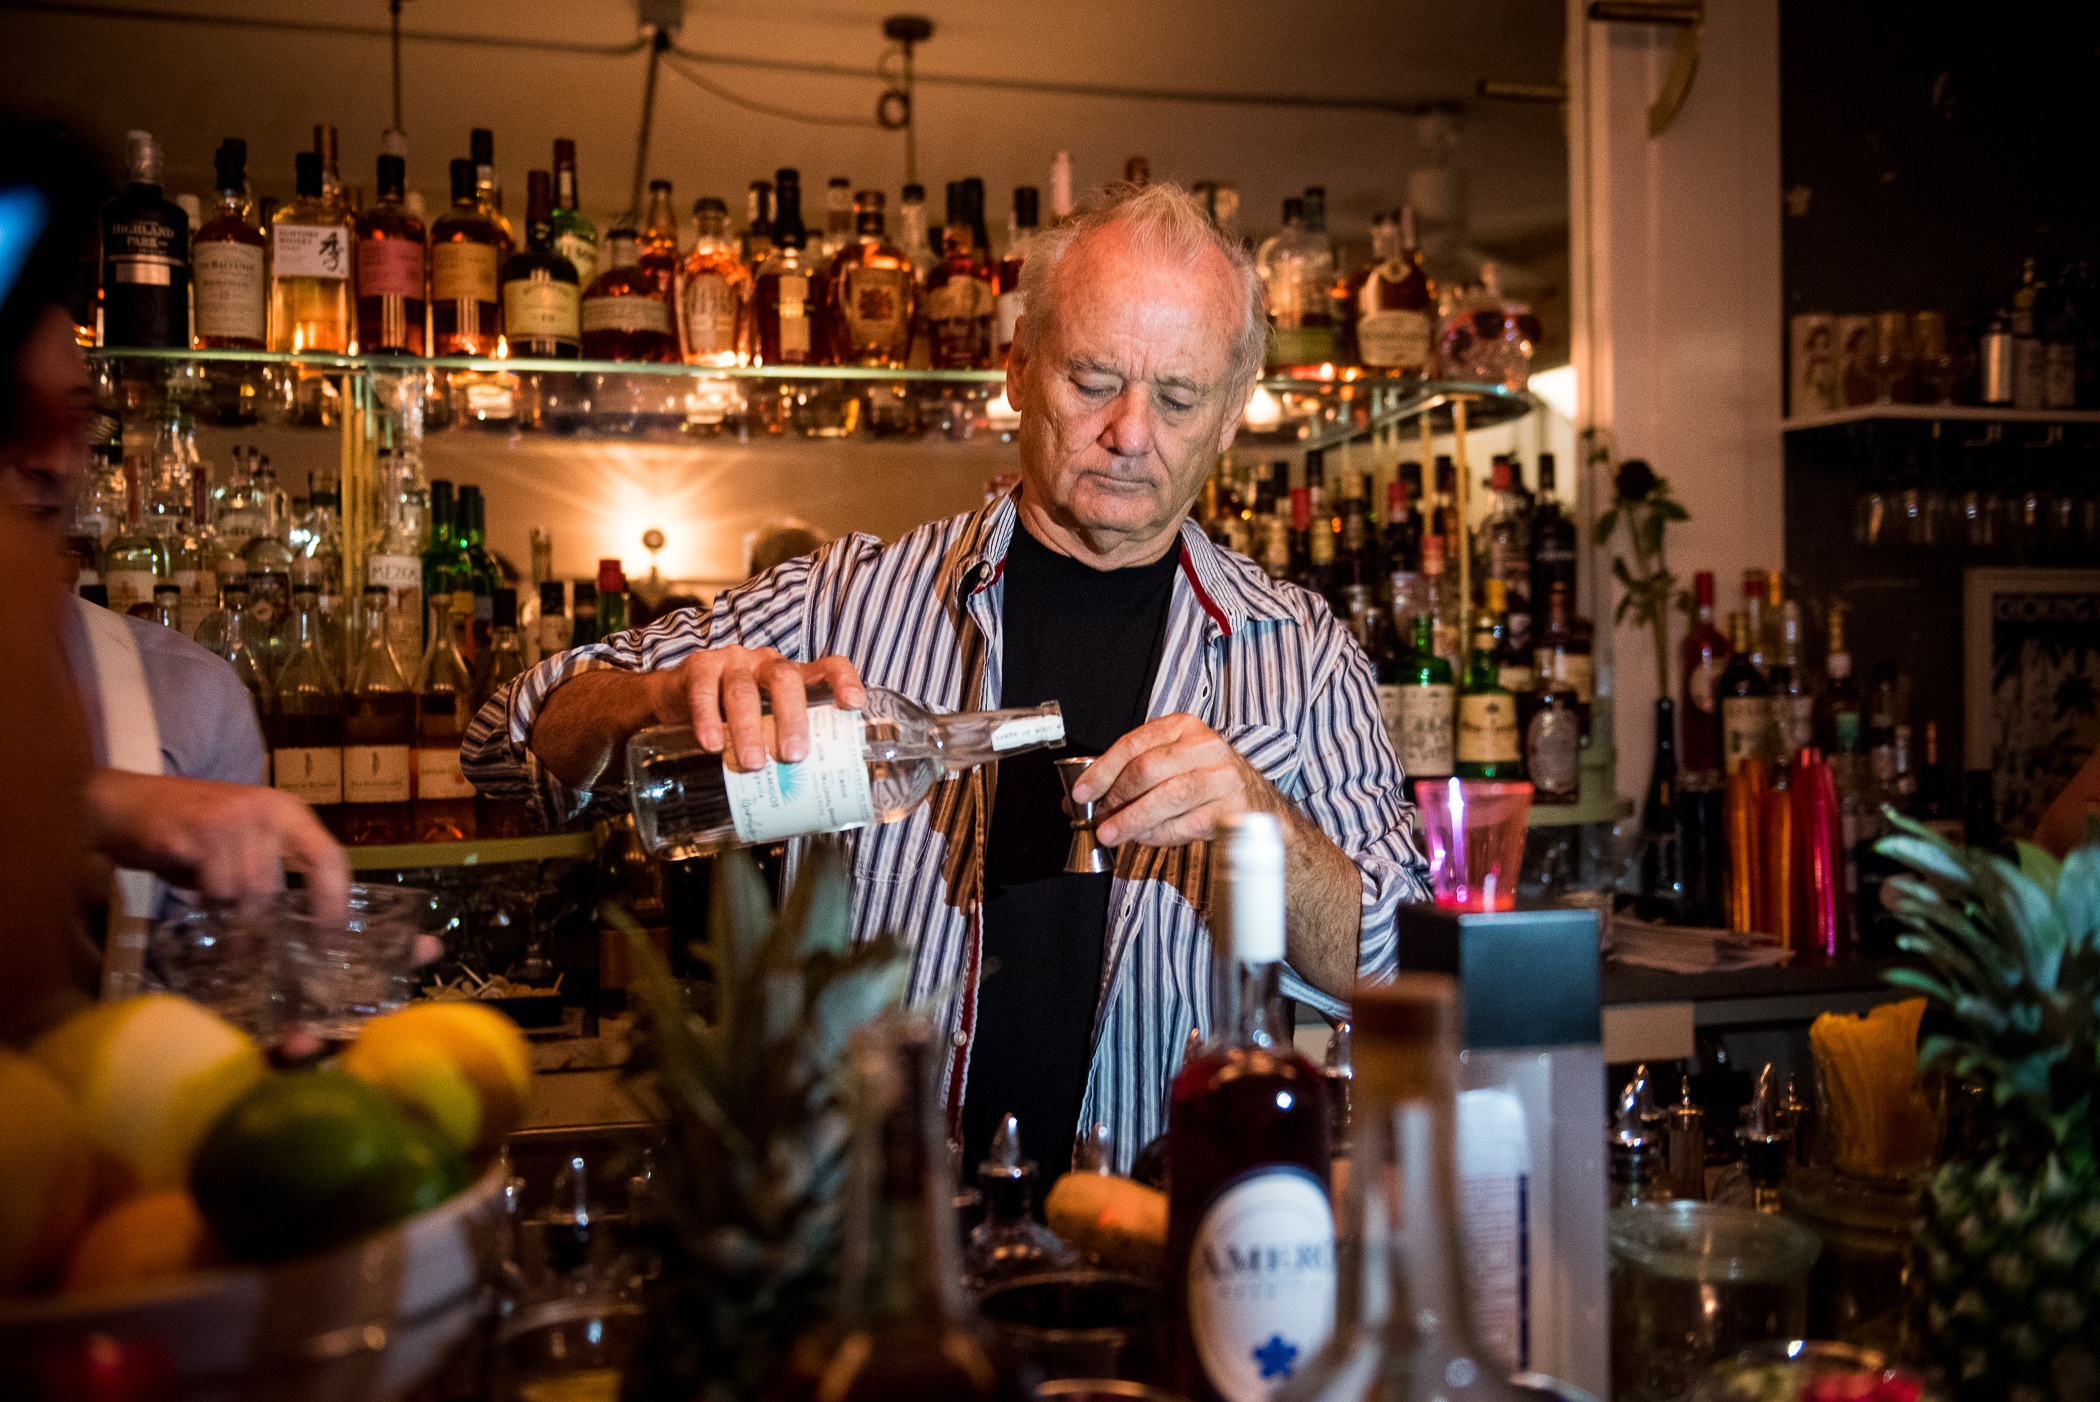 NEW YORK - September 16: PULSE - Bill Murray bartends in Brooklyn, at 21 GREENPOINT, 21 Greenpoint Ave in Brooklyn. September 16, 2016. (Photo by Gabi Porter)